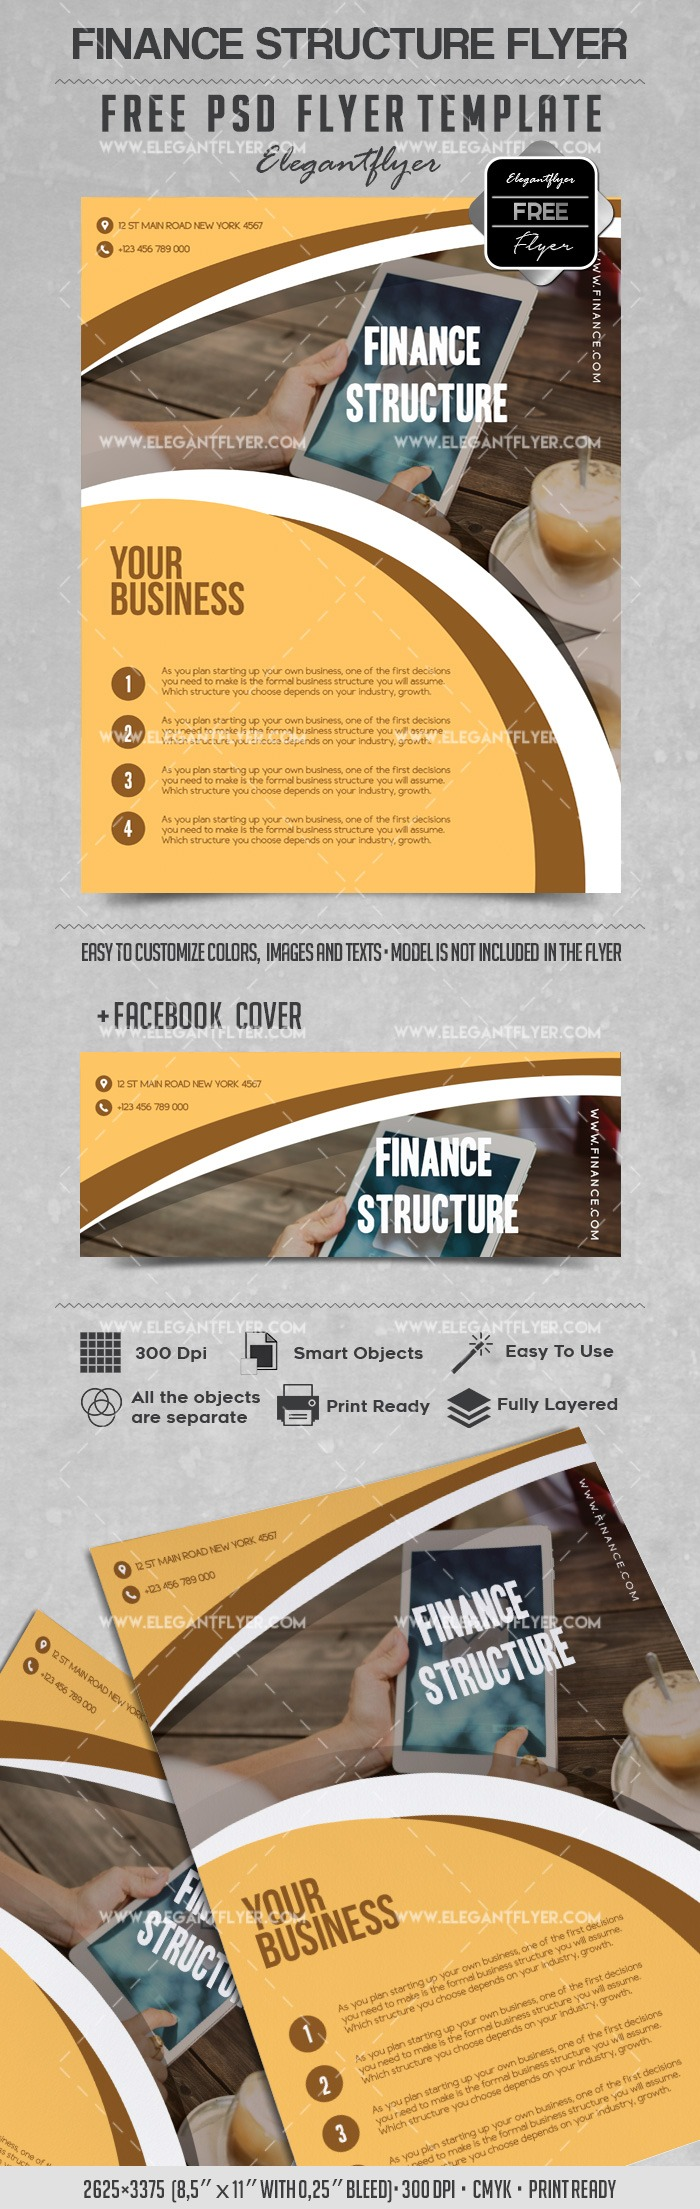 Finance Structure – free flyer templates psd